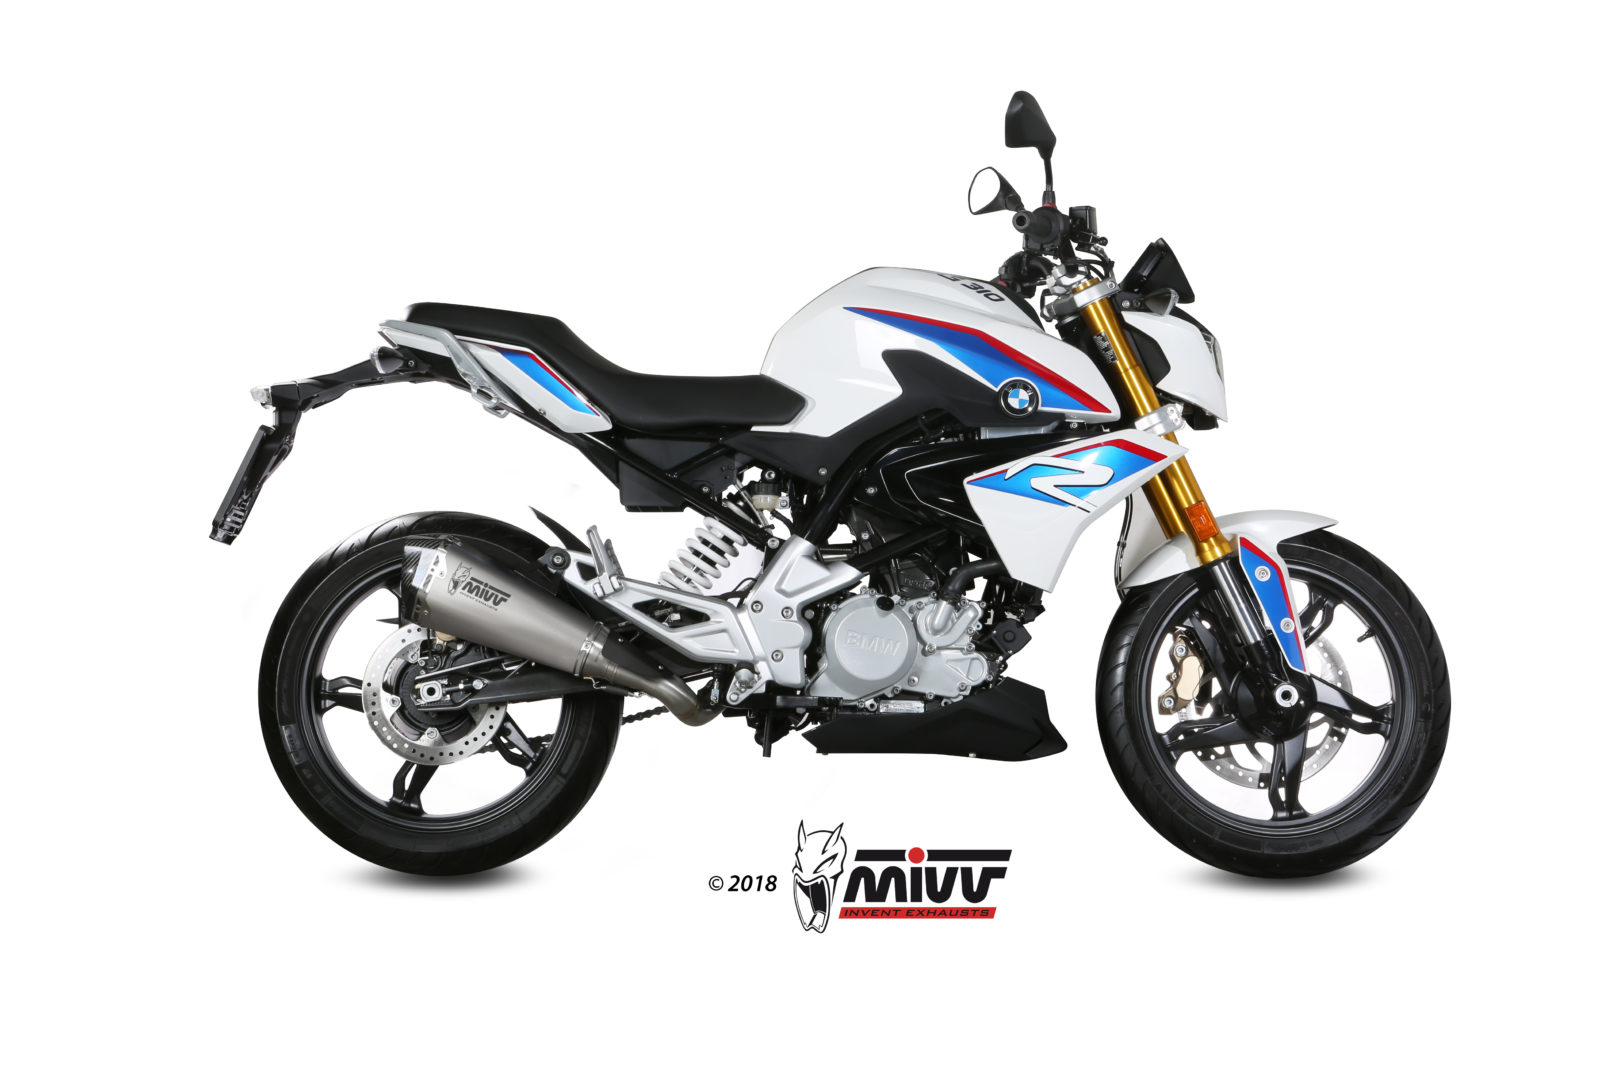 BMW G 310 R Exhaust Mivv Delta Race Stainless steel B.032.LDRX